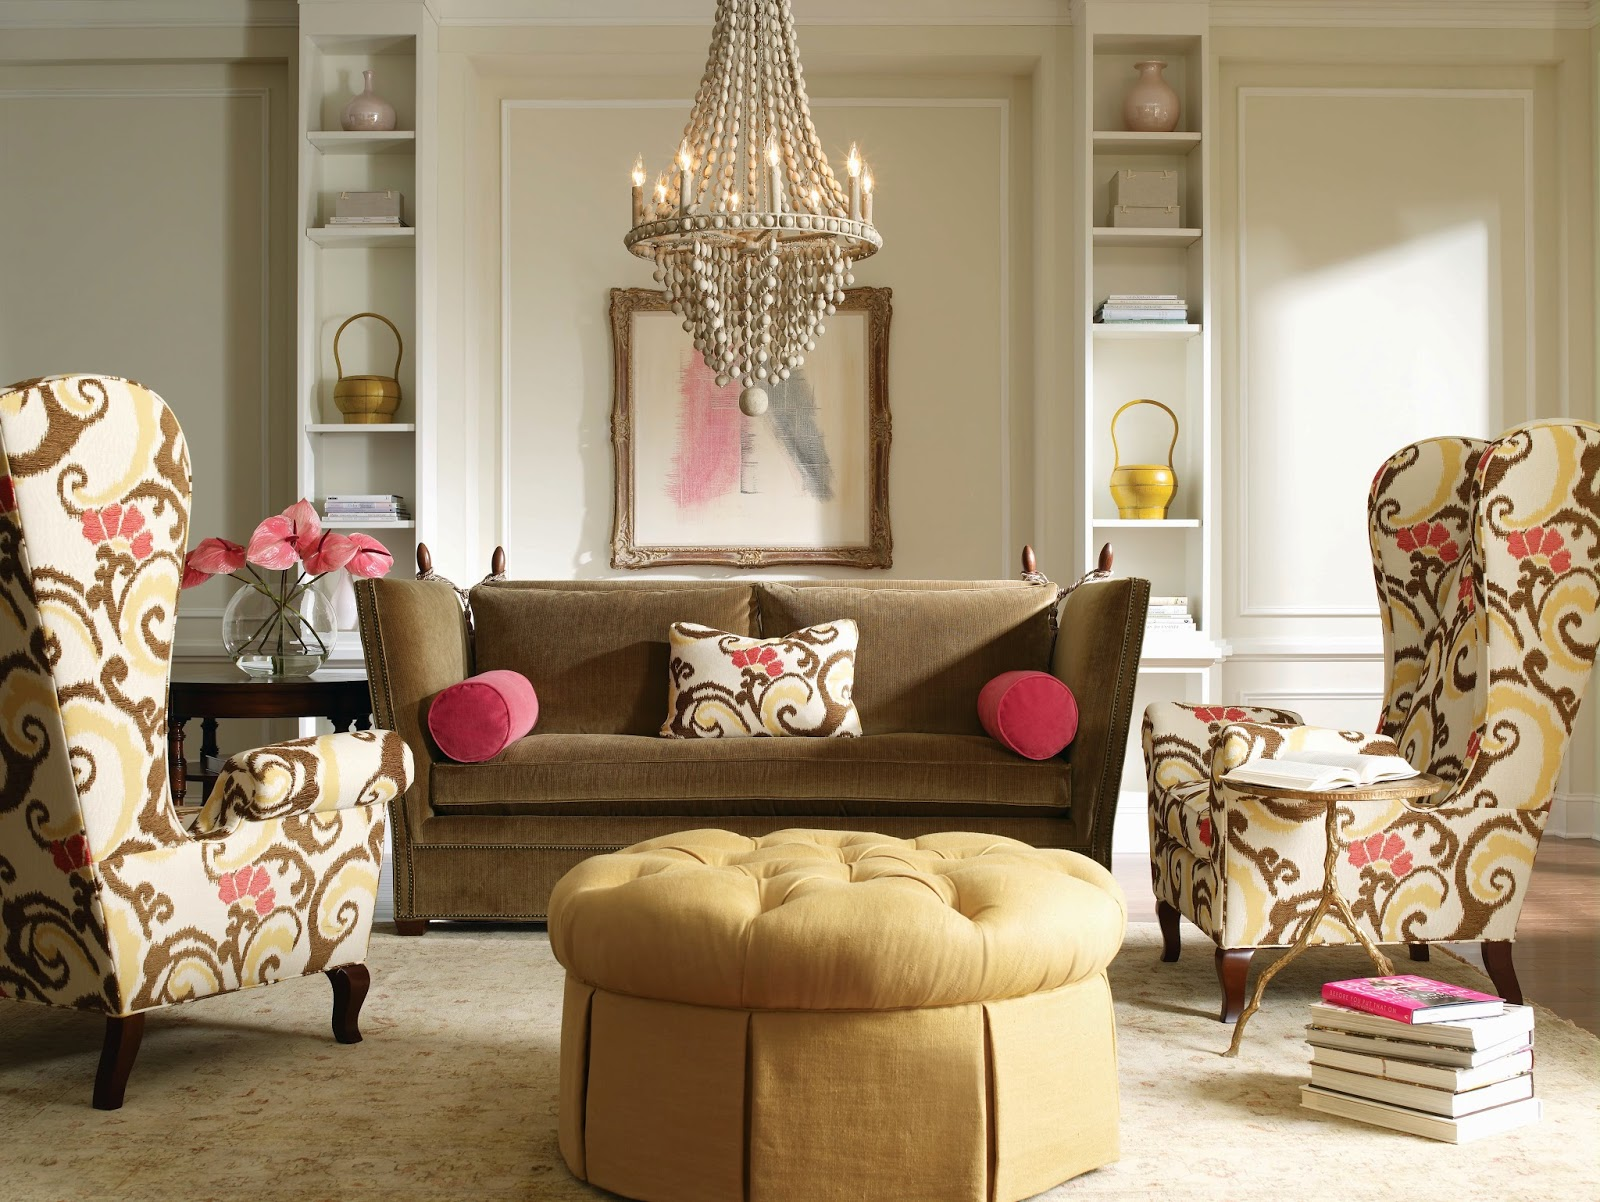 Classic style furniture fro practical chic interiors neoclassicism in the roomy premise